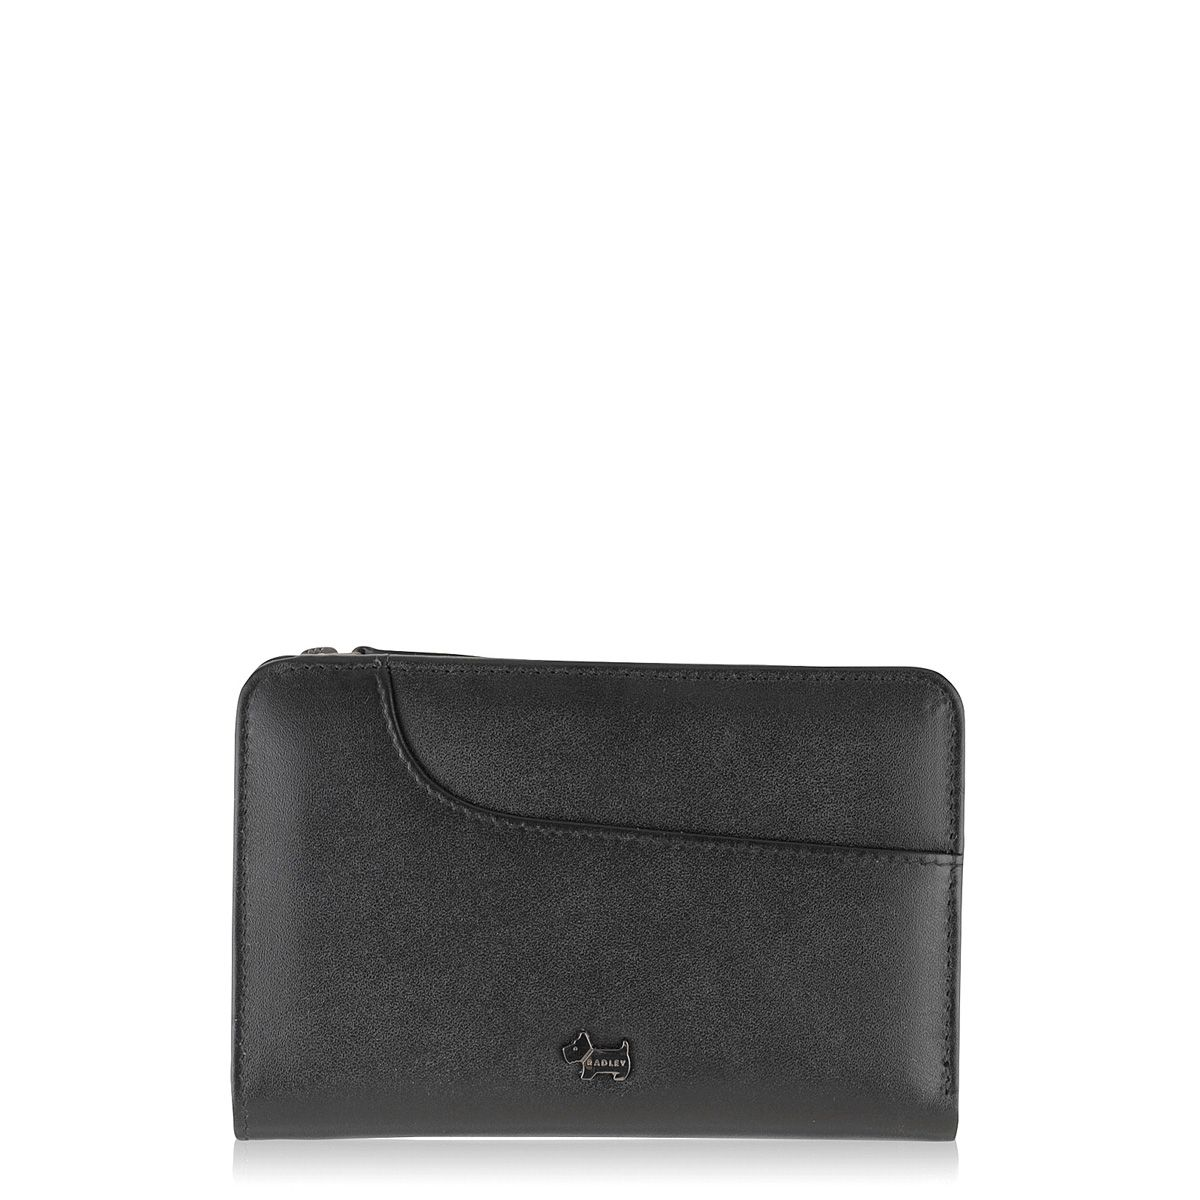 Radley Pocket bag black zip around purse Black